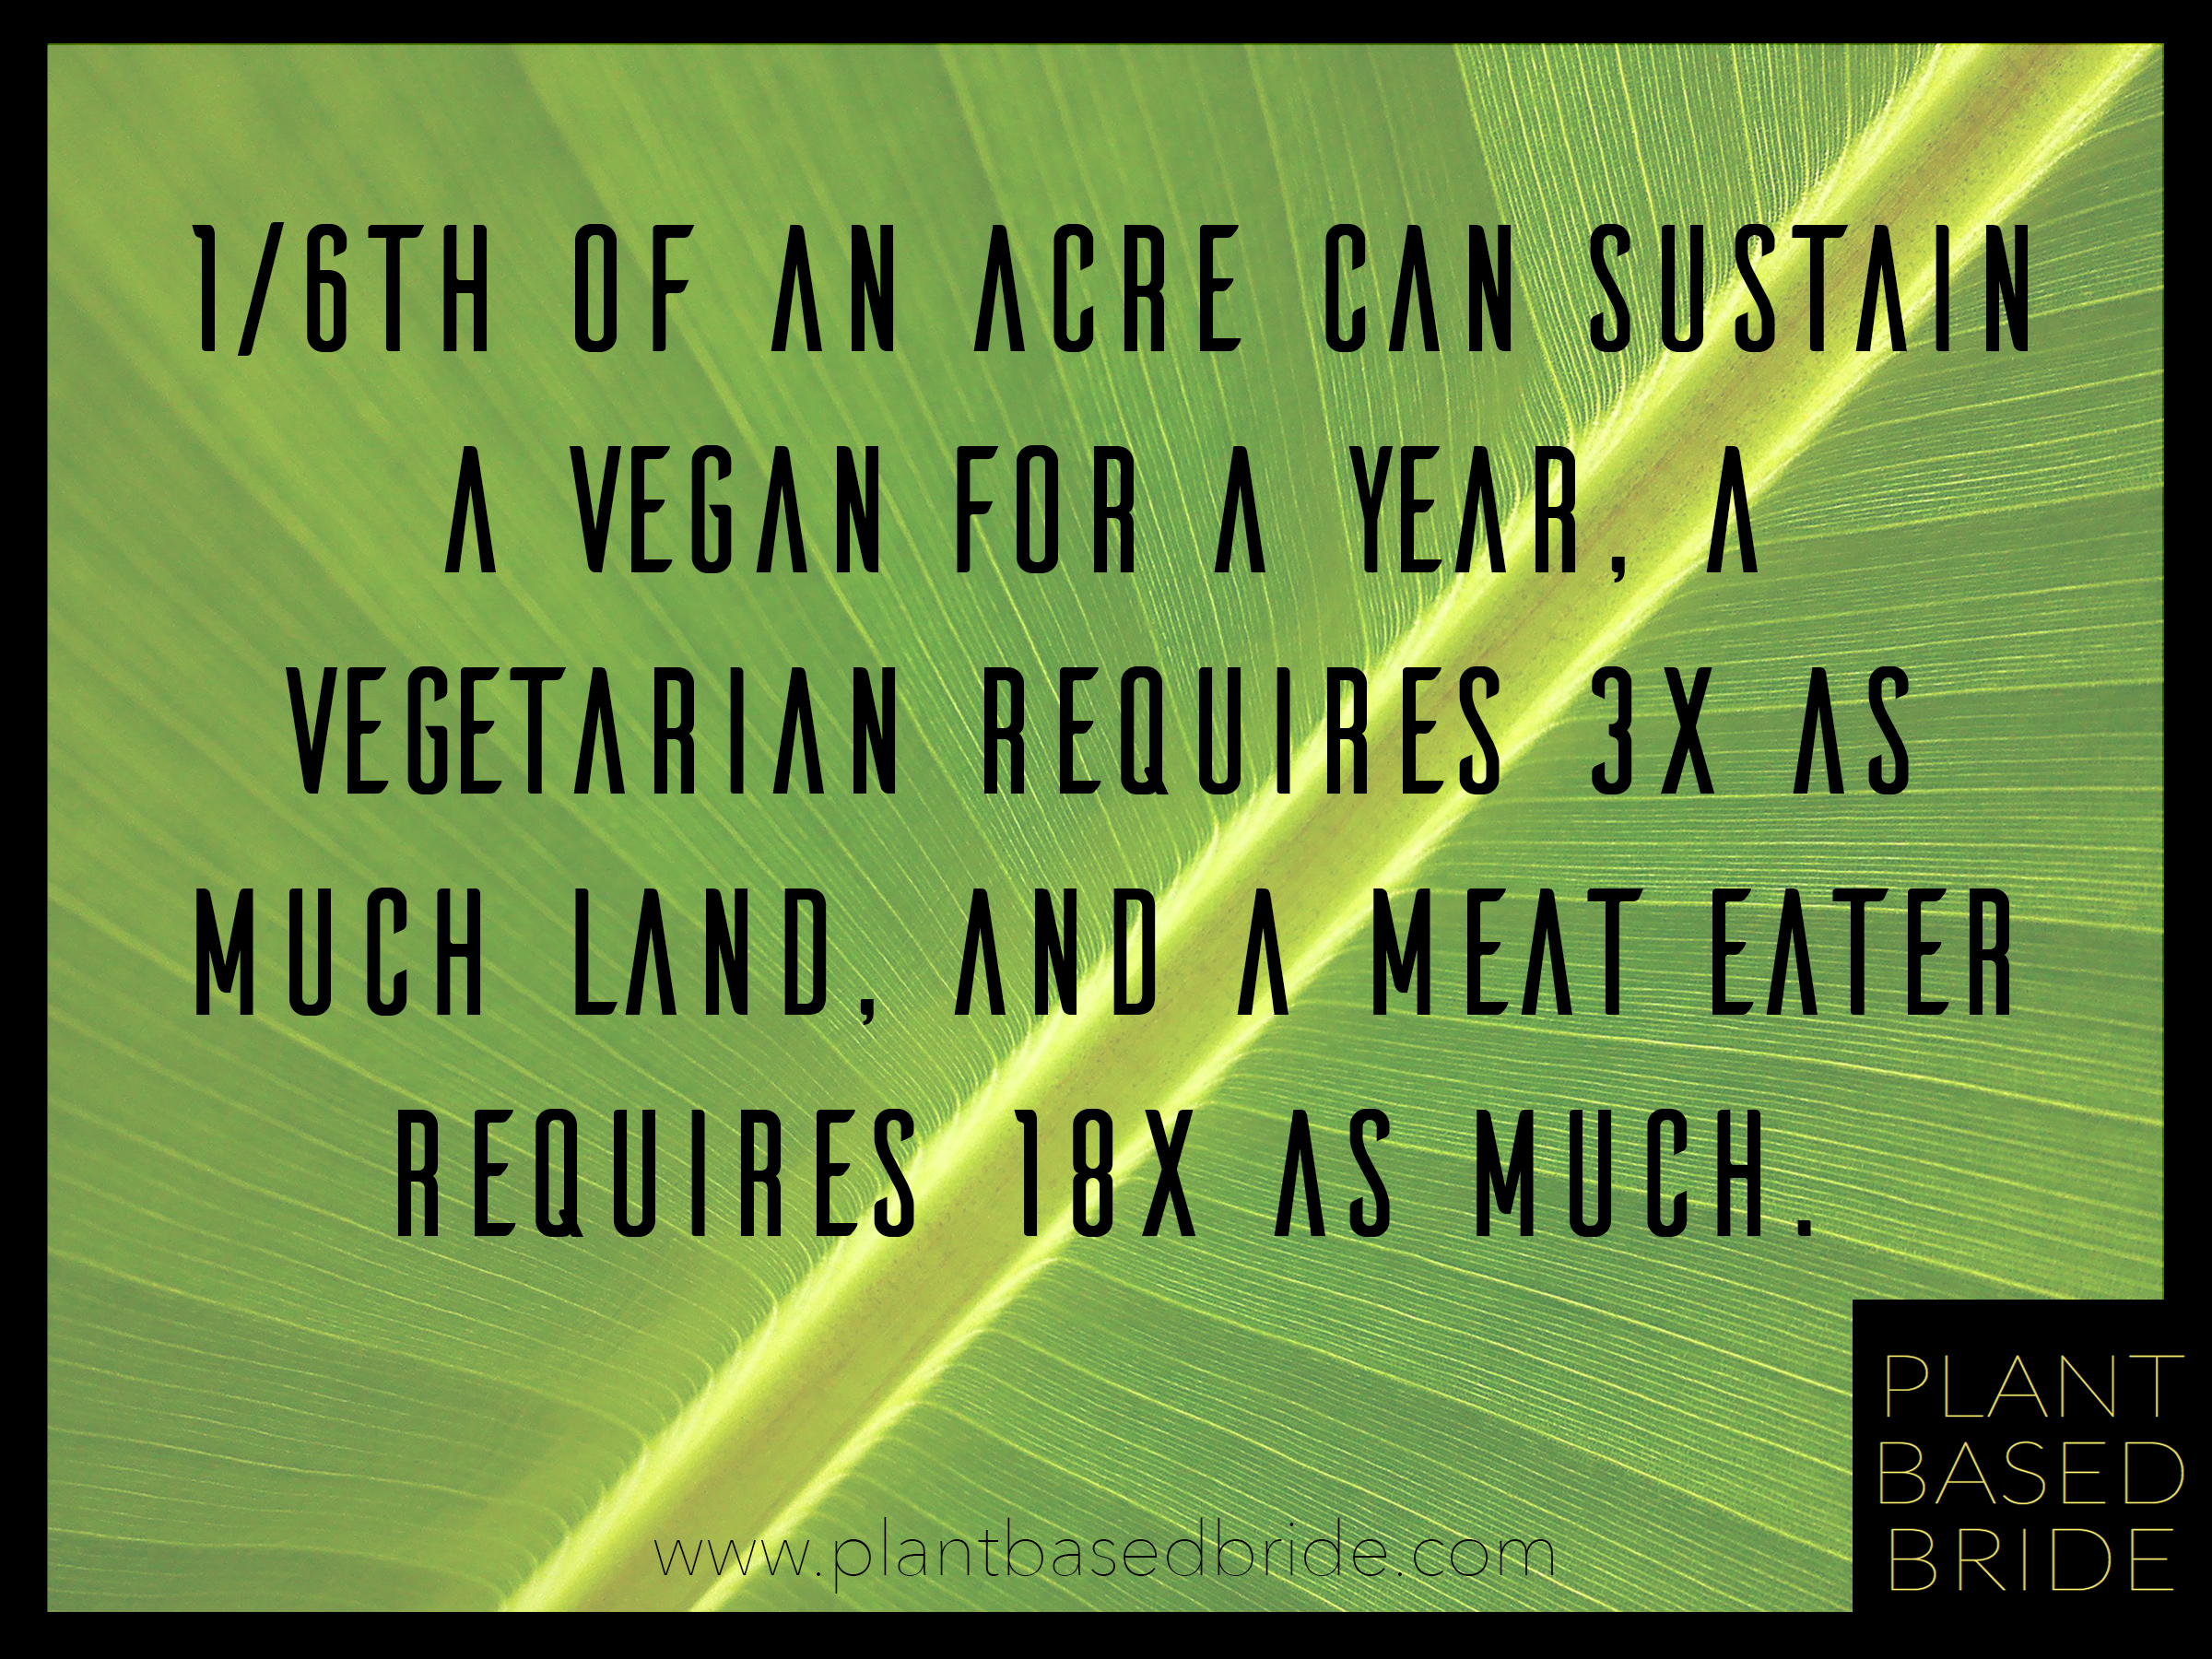 Sustaining a vegan diet requires a tiny amount of resources in comparison with omnivorous diets.  Check out this comprehensive list of reasons to go vegan from plantbasedbride.com!